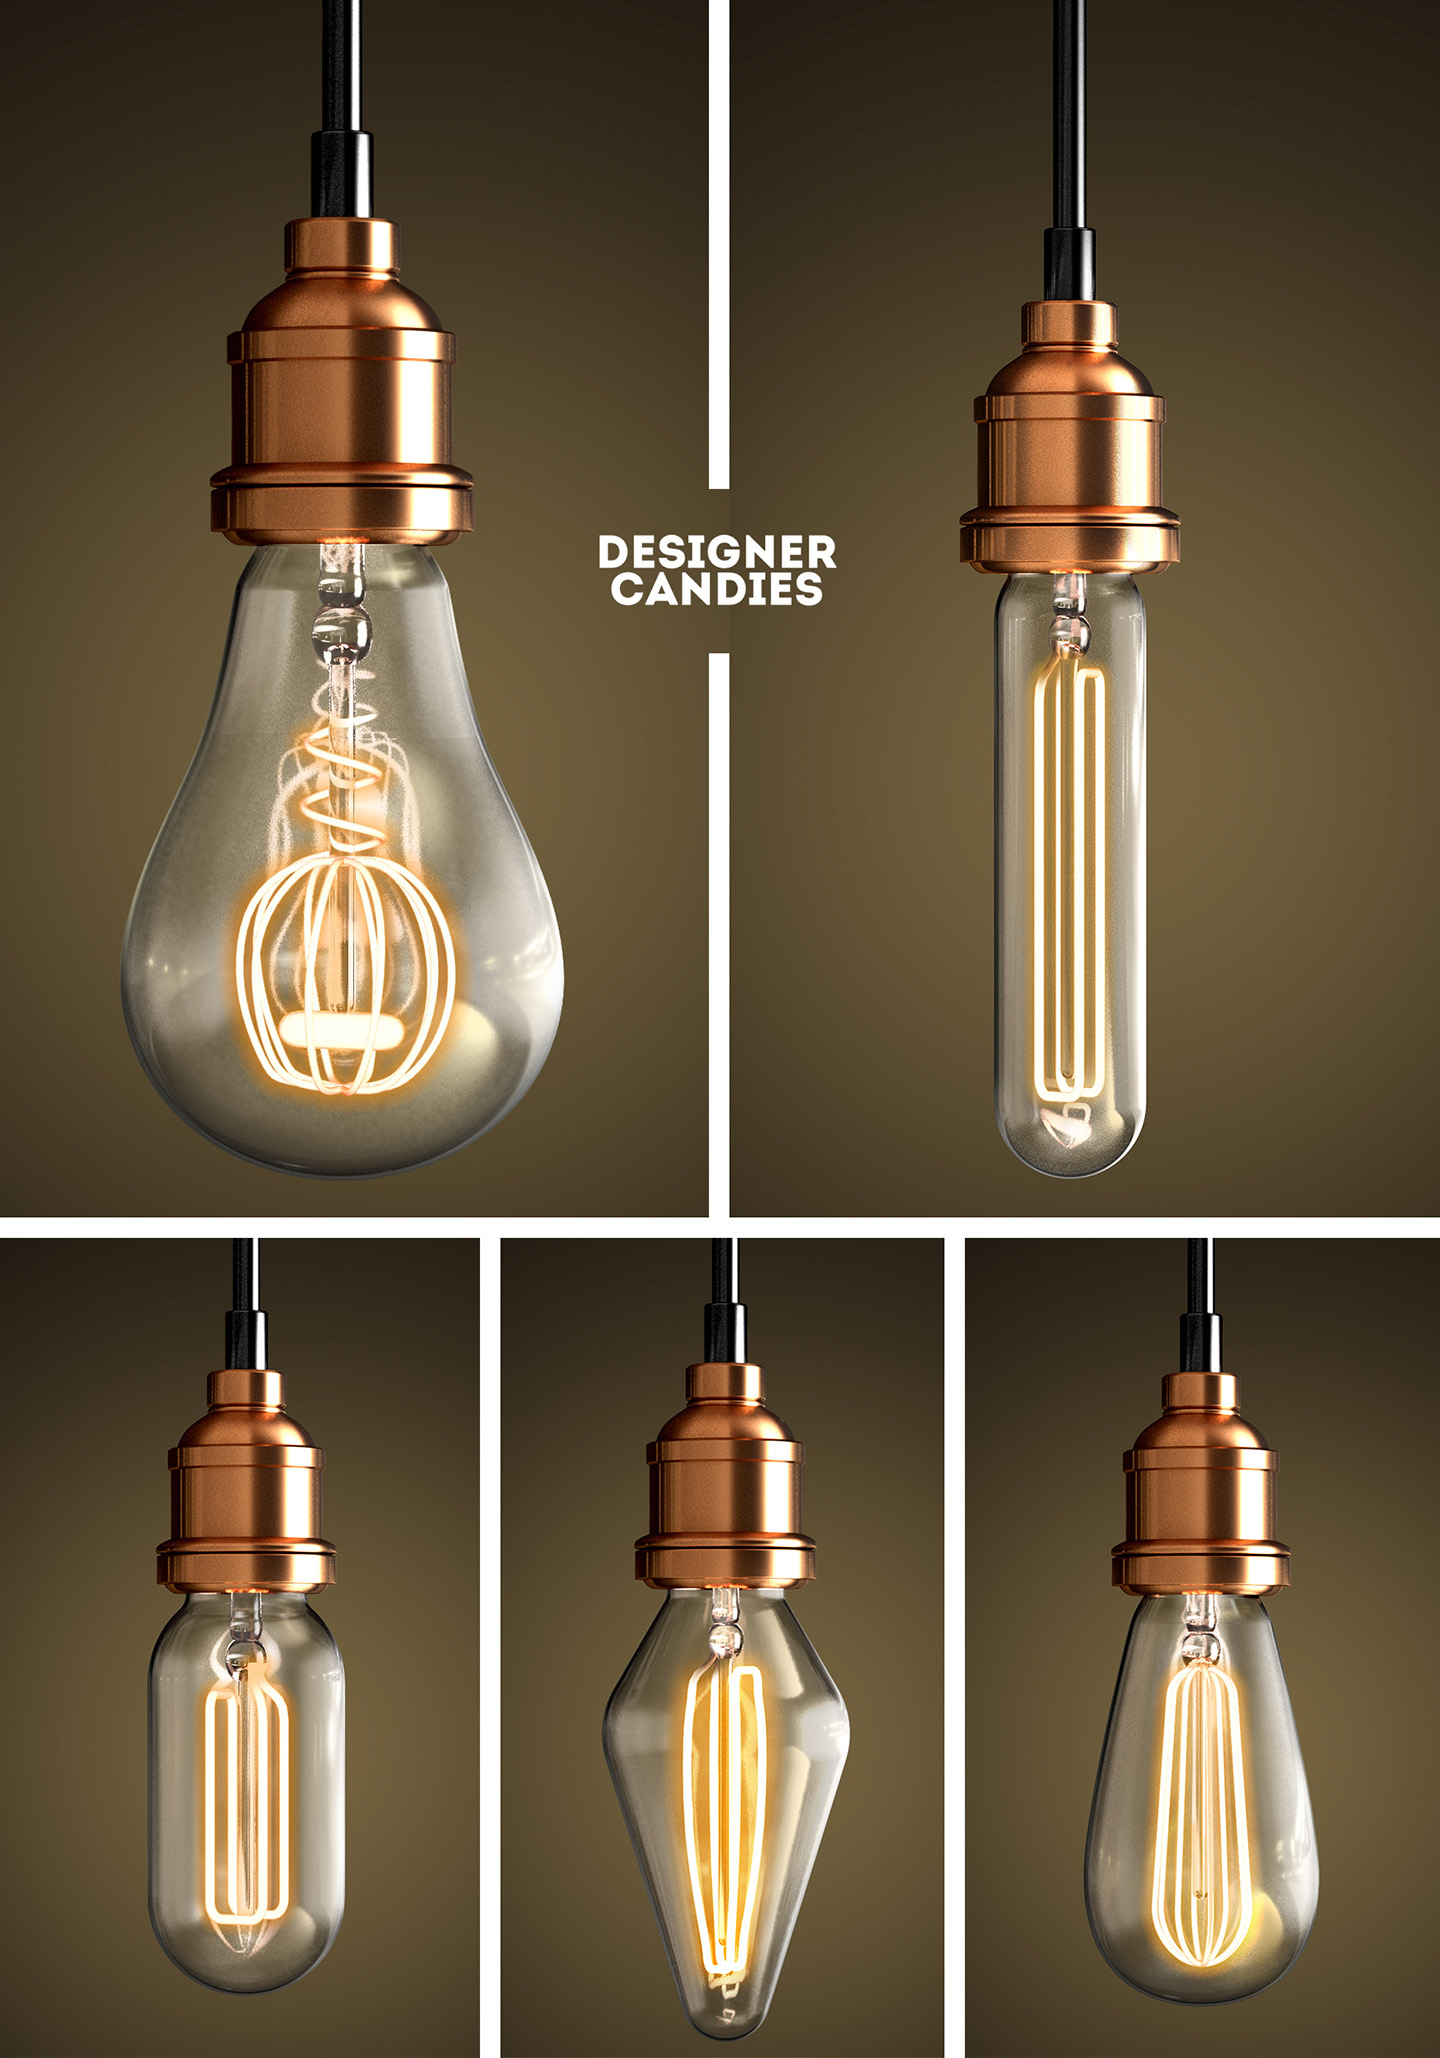 Transparent Lightbulb Renders